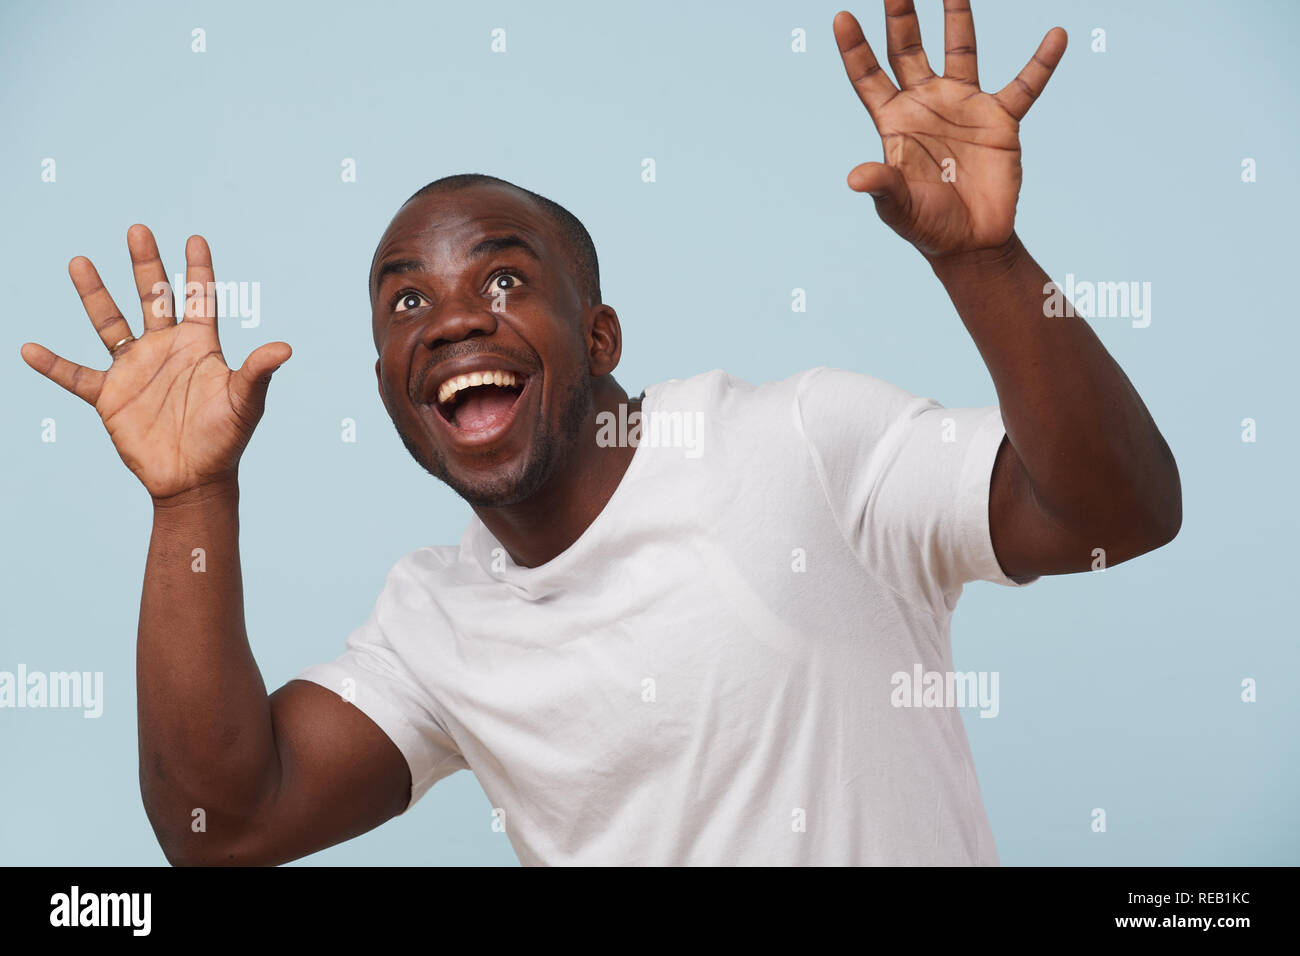 Handsome bold black man in white T-shirt is smiling, against pale blue background. ?razy eyes, eyebrows raised. Wow gesture. Grimacing. Close up. - Stock Image